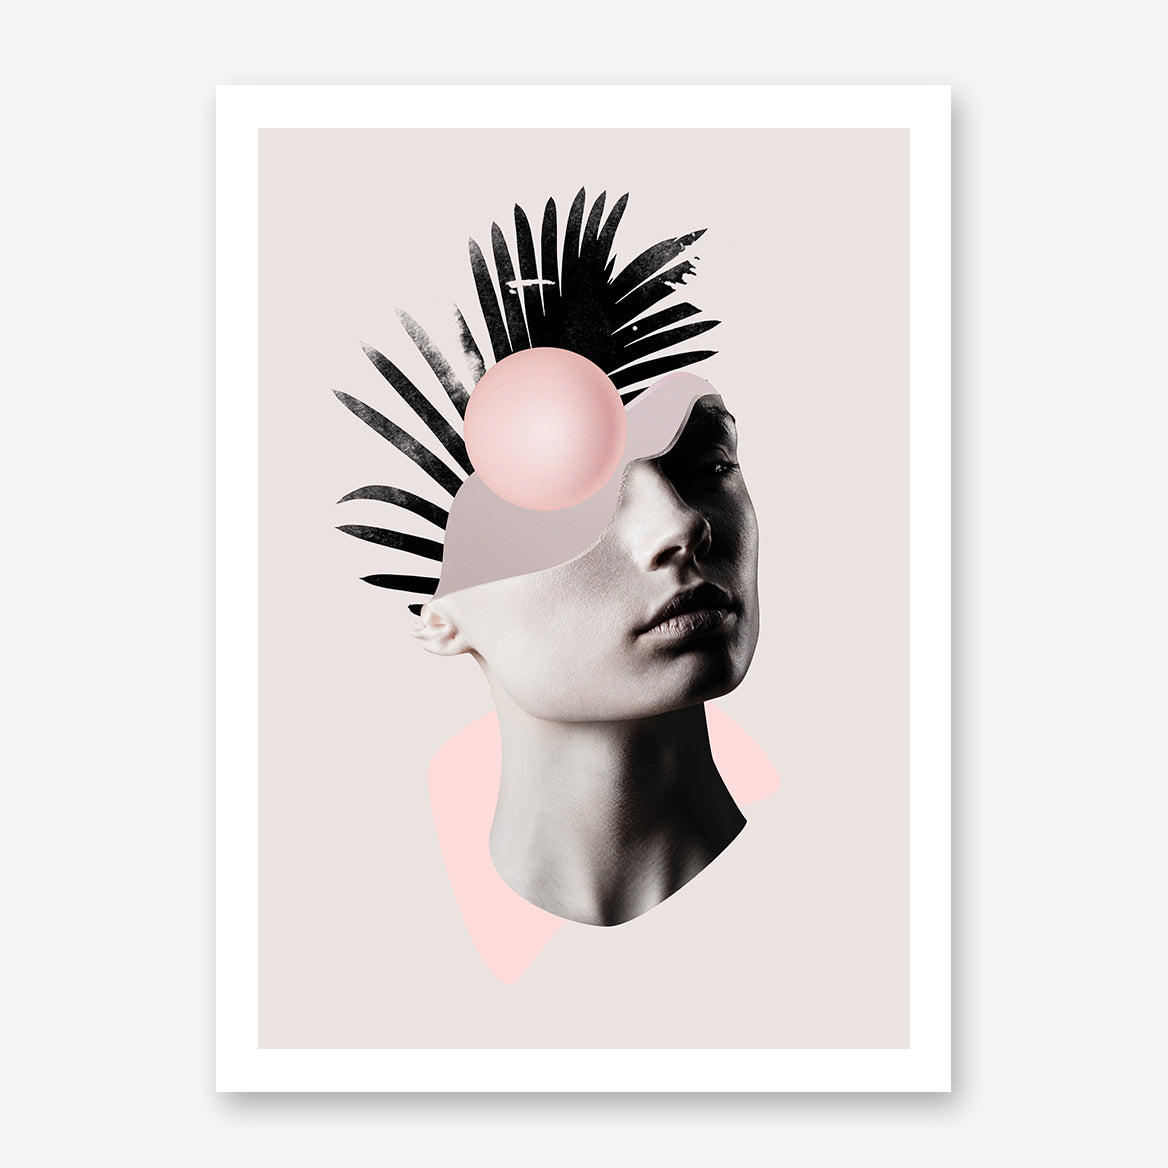 Abstract poster print by Robert Farkas, with a woman's portrait.